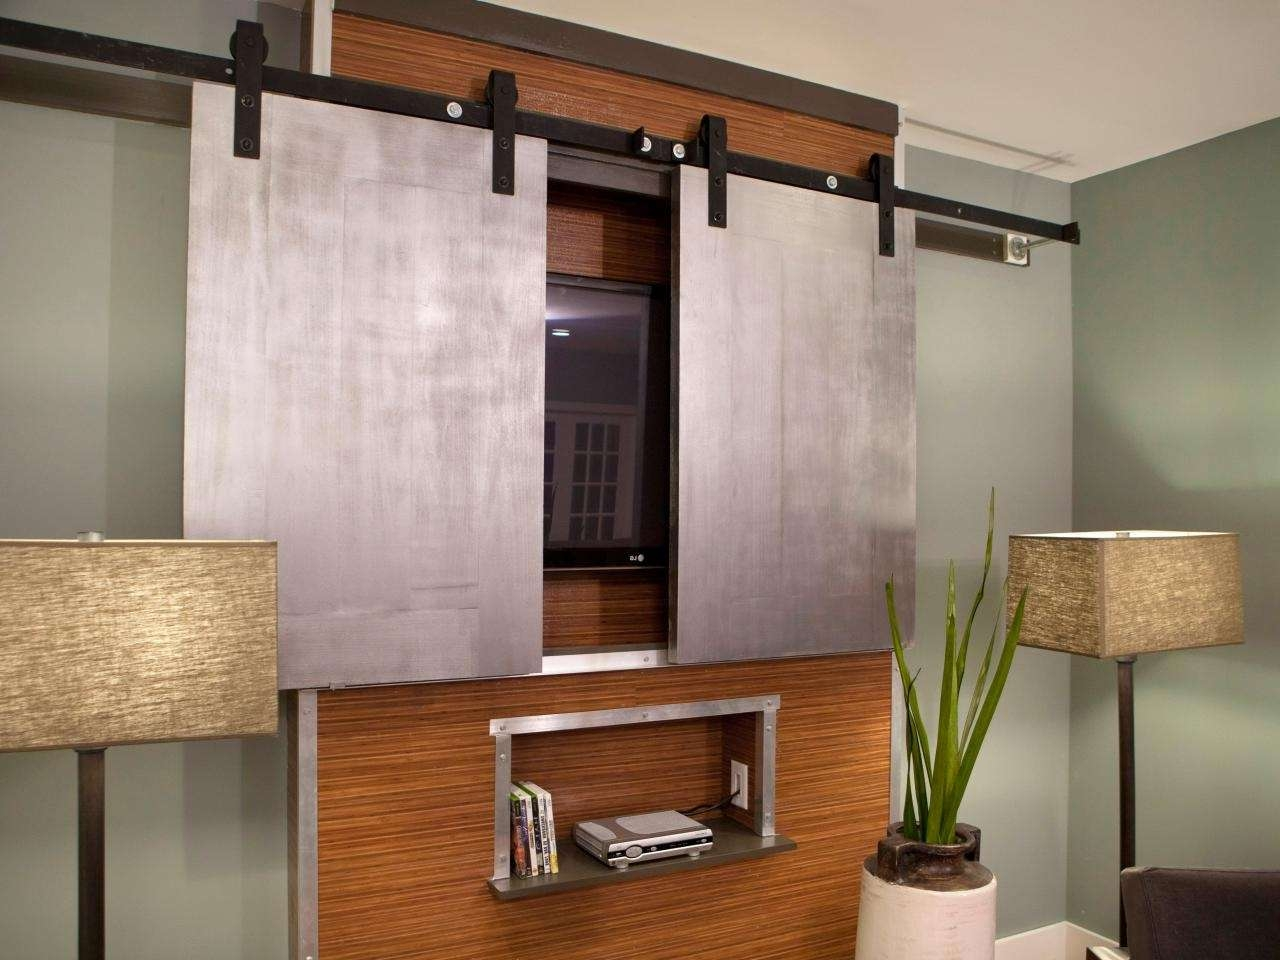 Wall Mounted Tv Cabinet Sliding Doors – Trekkerboy Inside Wall Mounted Tv Cabinets With Sliding Doors (View 15 of 20)